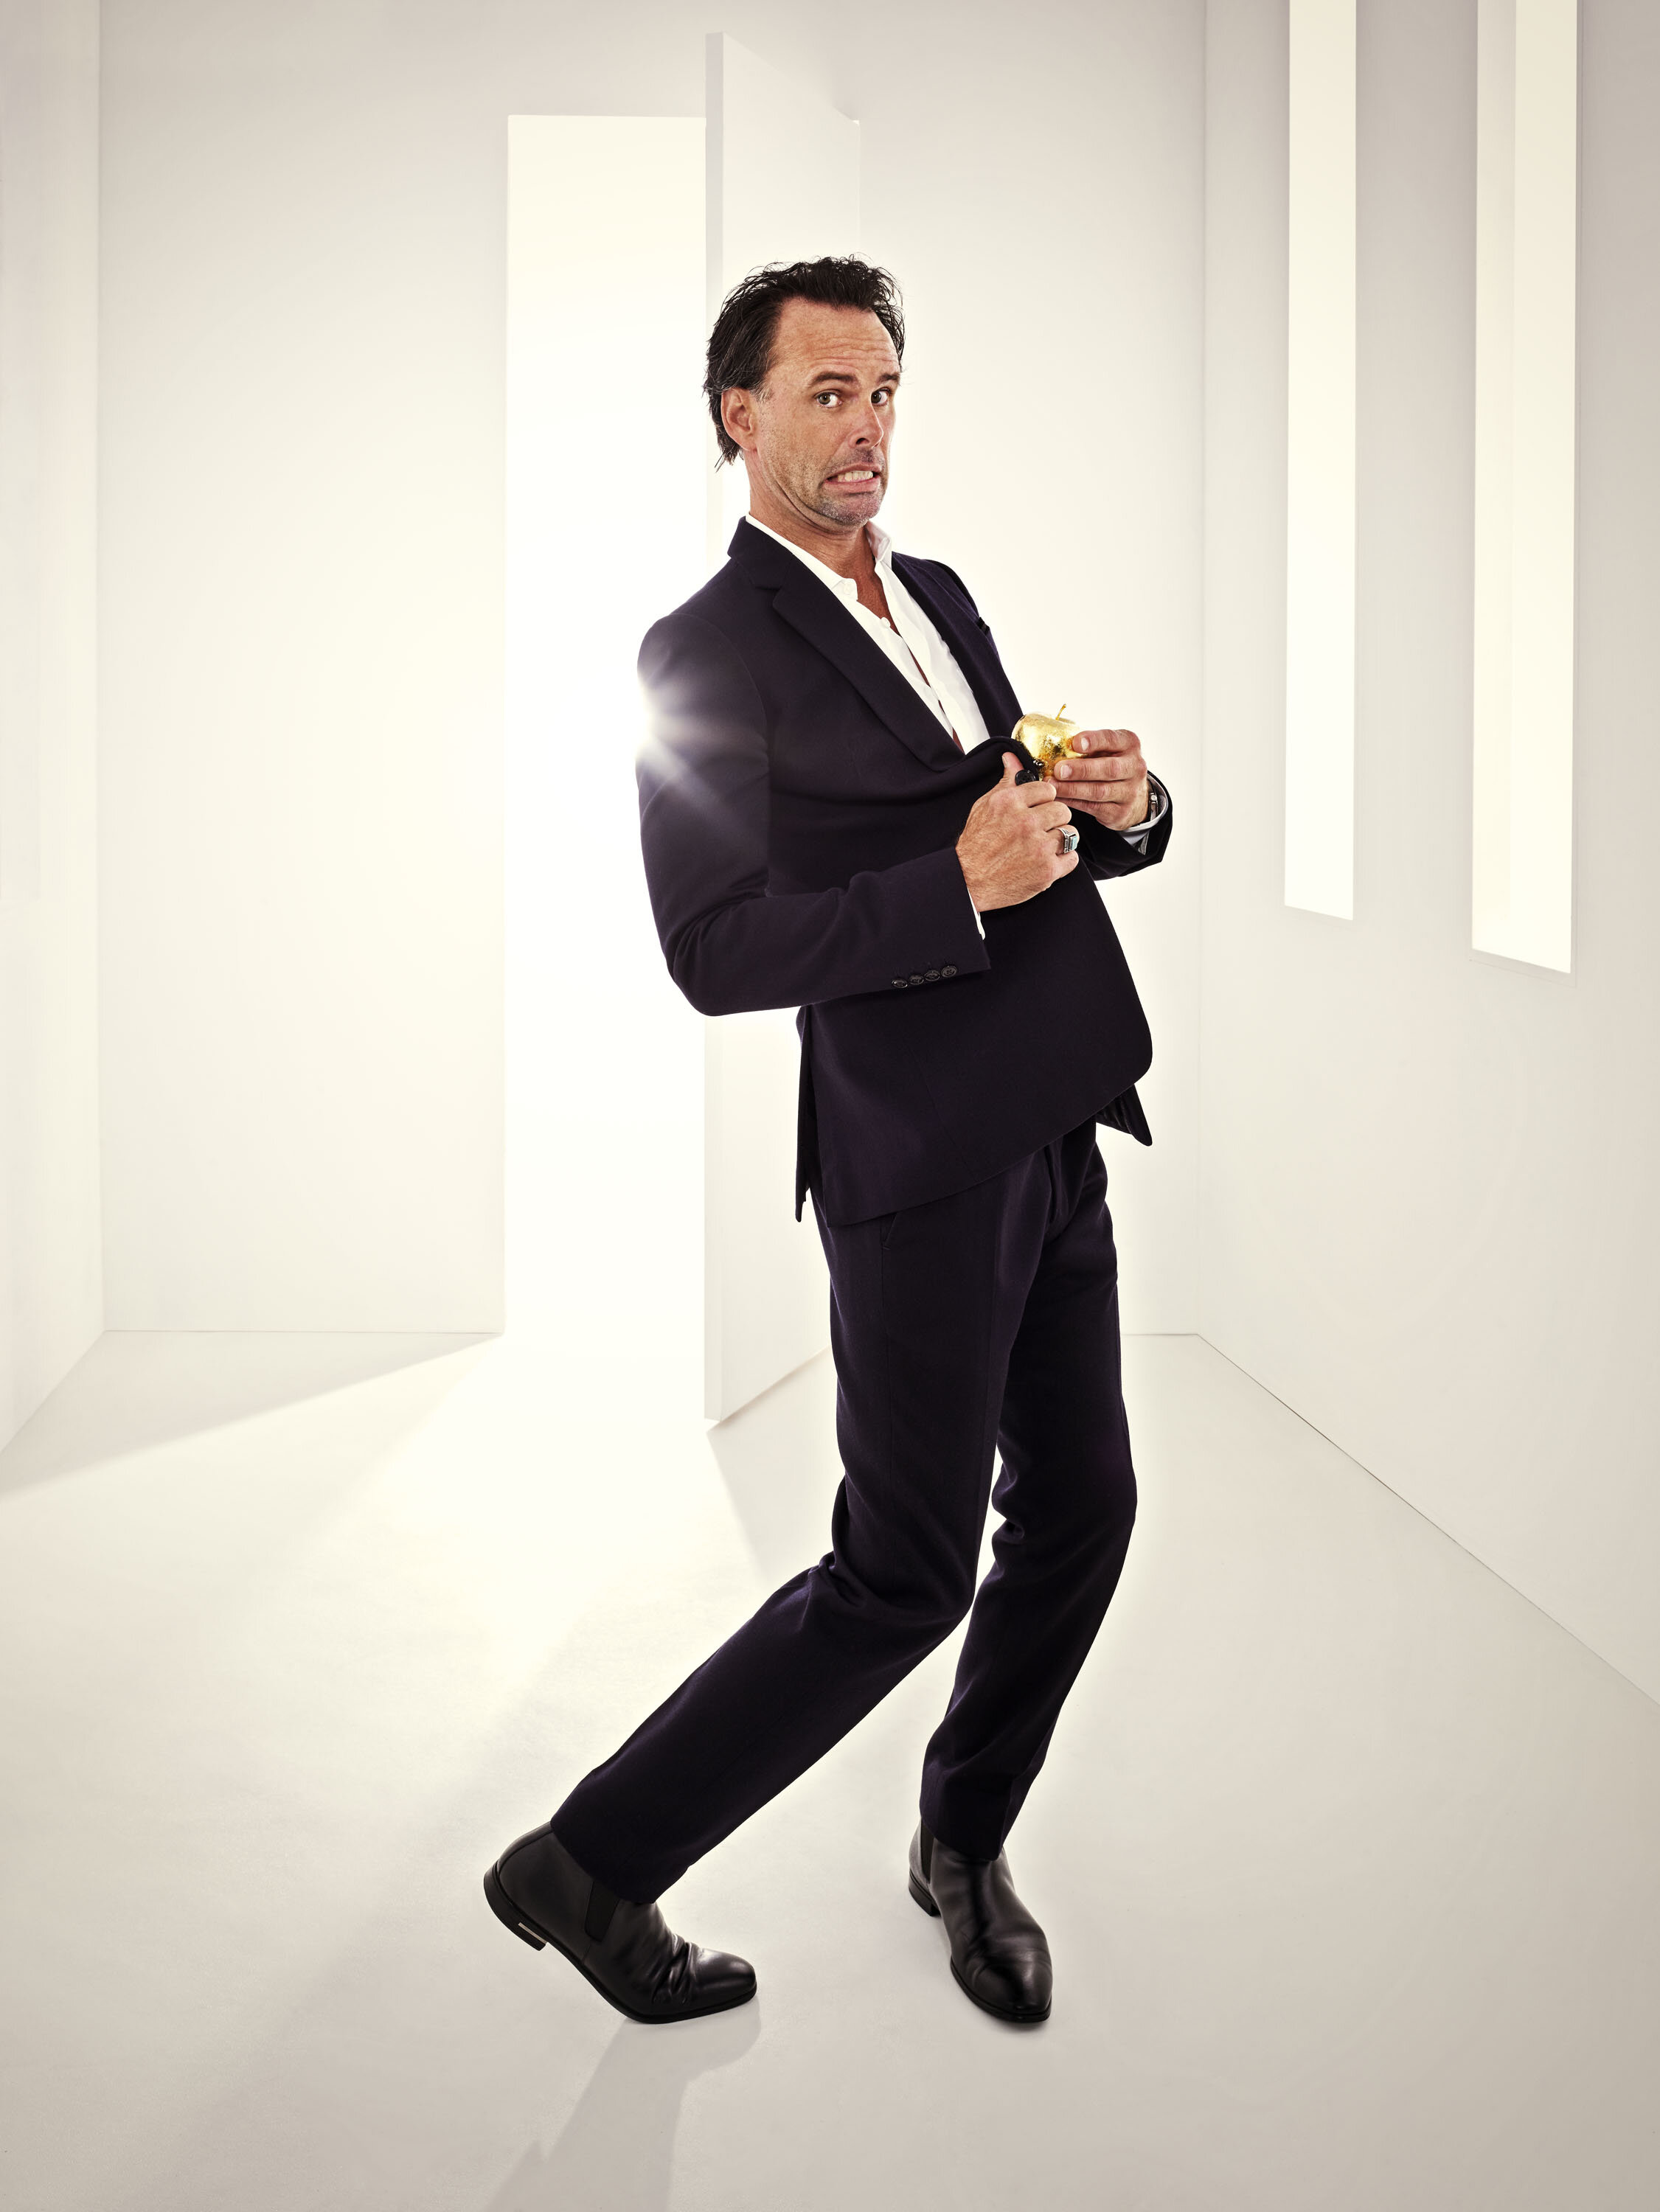 20190725_HBO_Gemstones_WaltonGoggins_104109.jpg